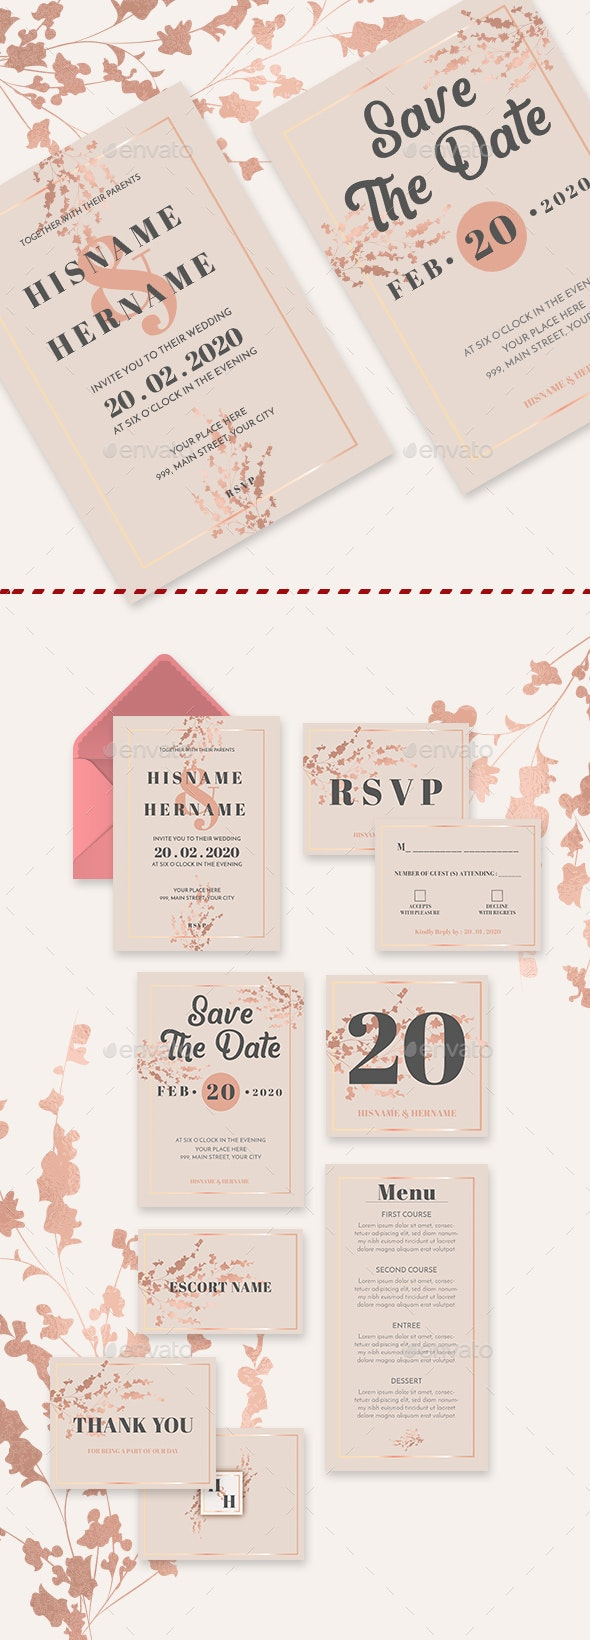 Romantic Blush Wedding Invitation Suite - Weddings Cards & Invites